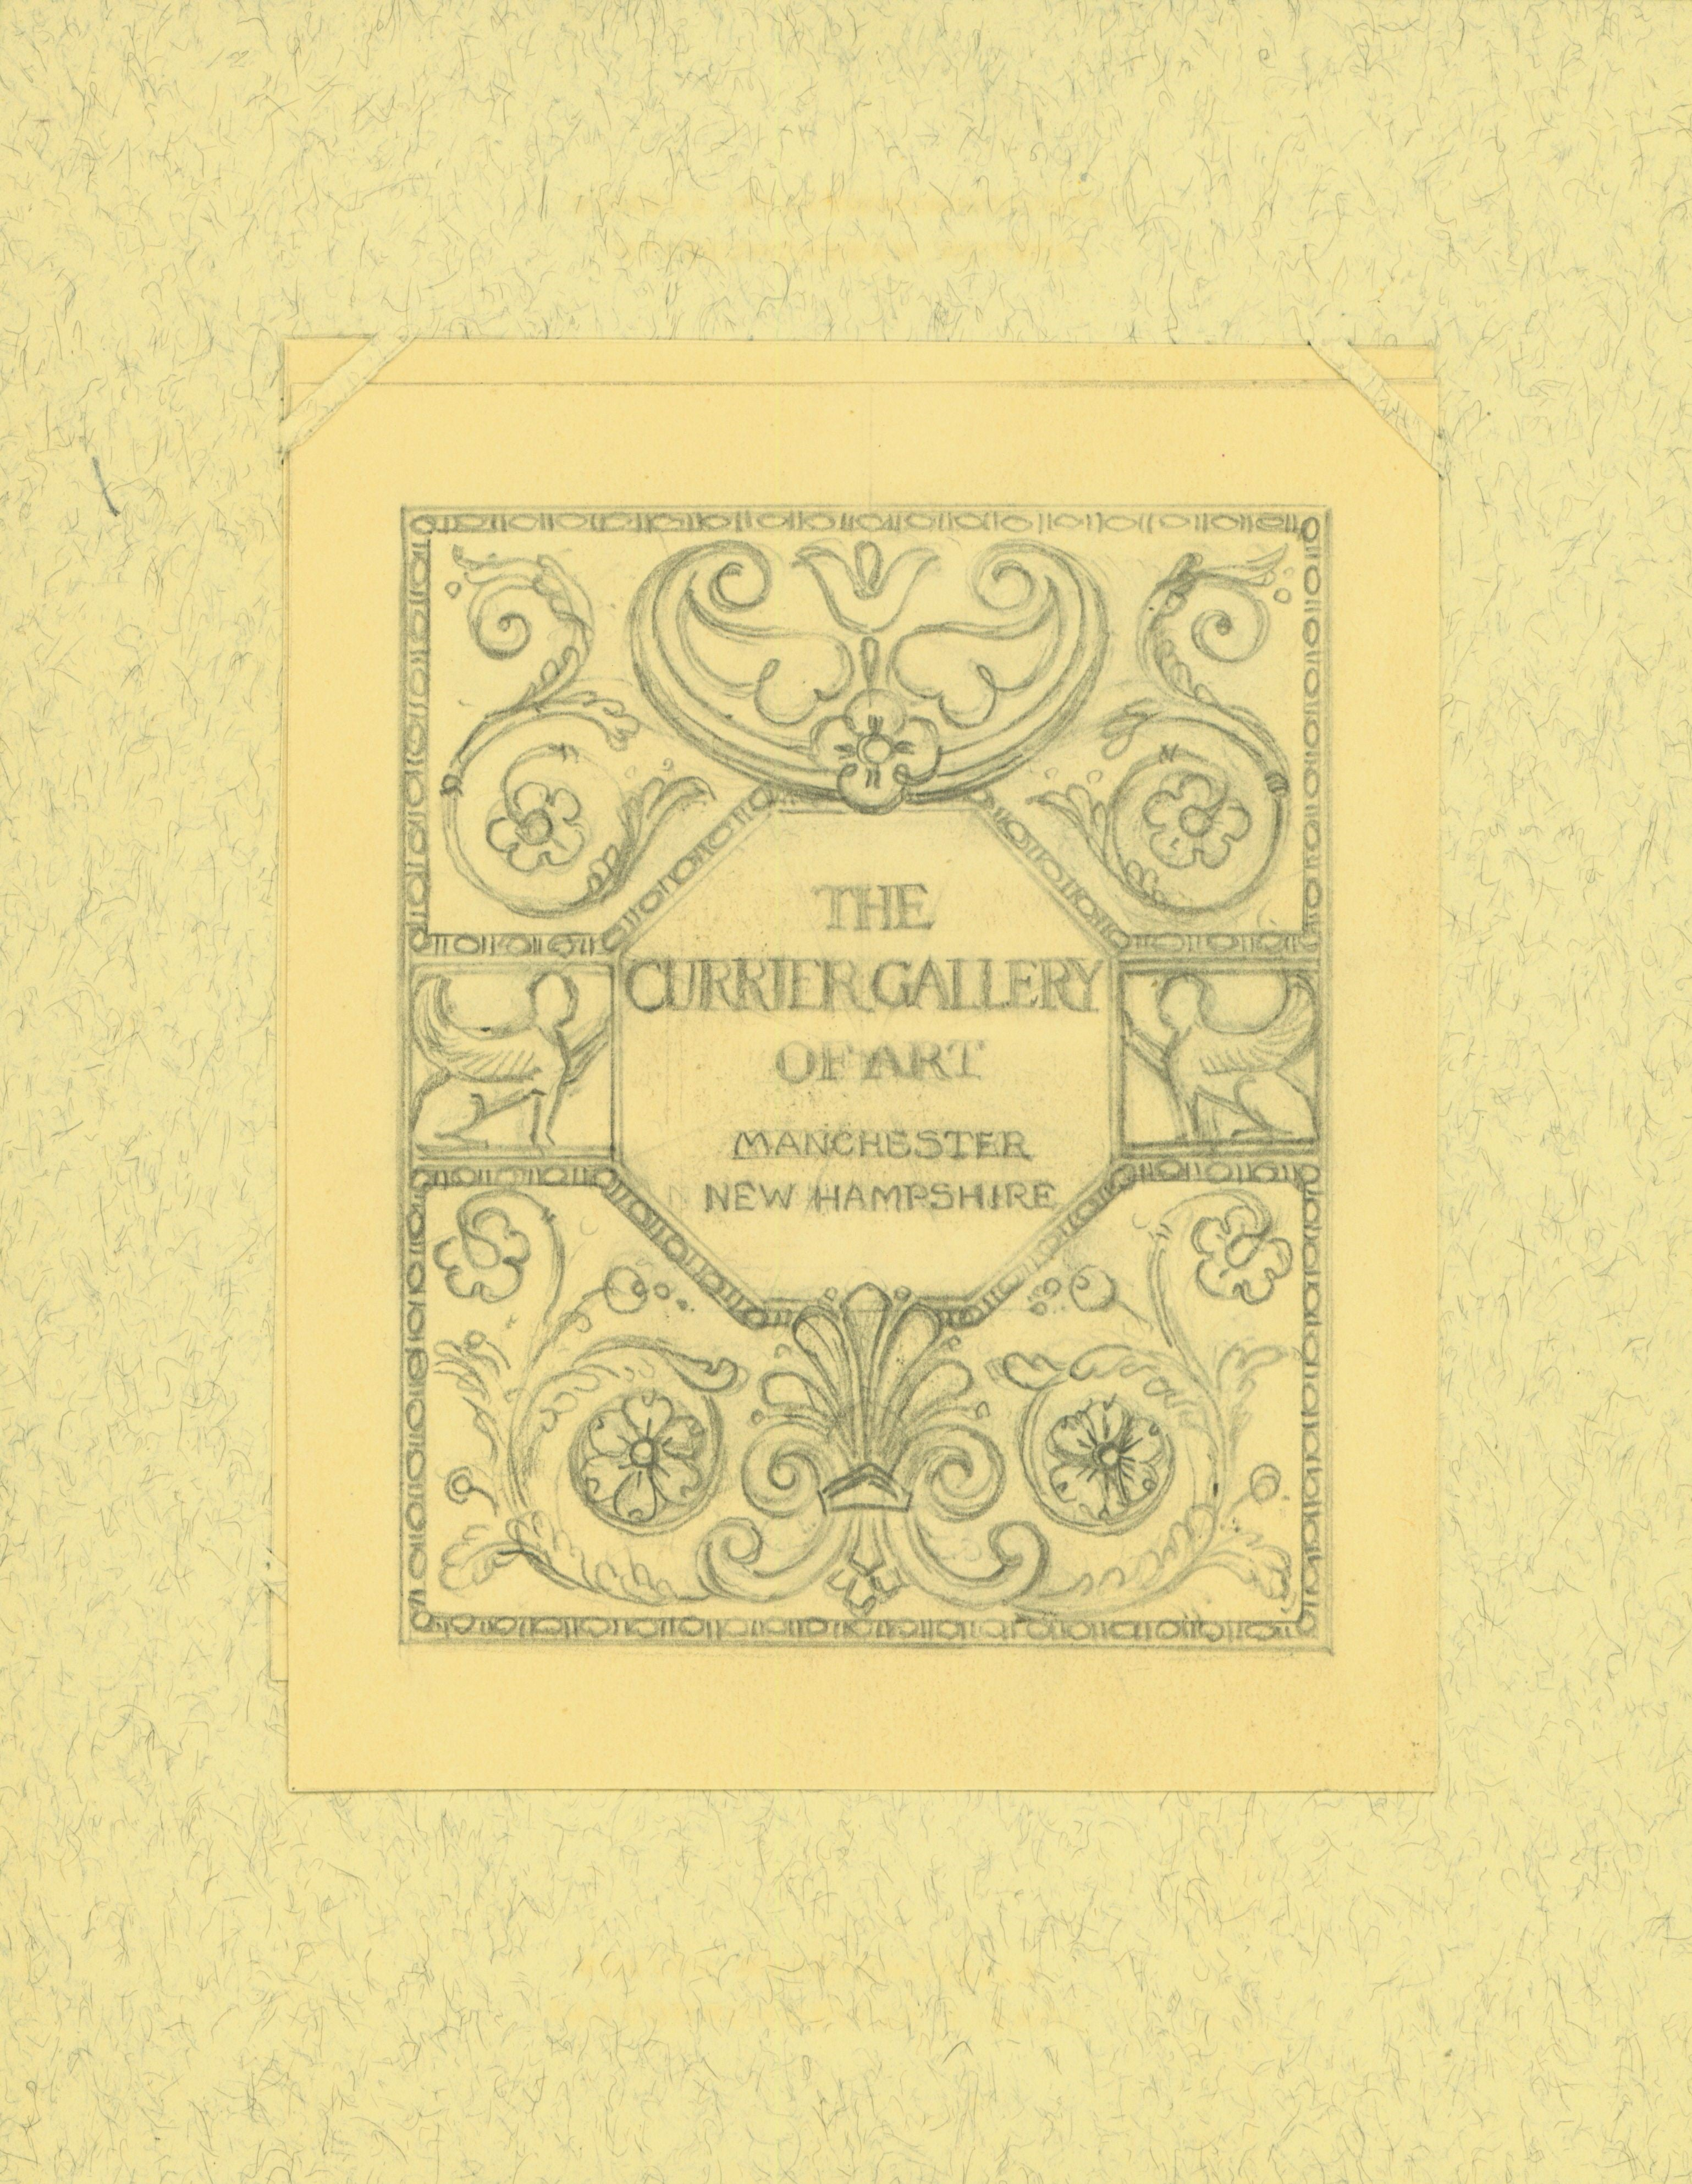 Scan of sketch of bookplate for the Currier Gallery of Art.